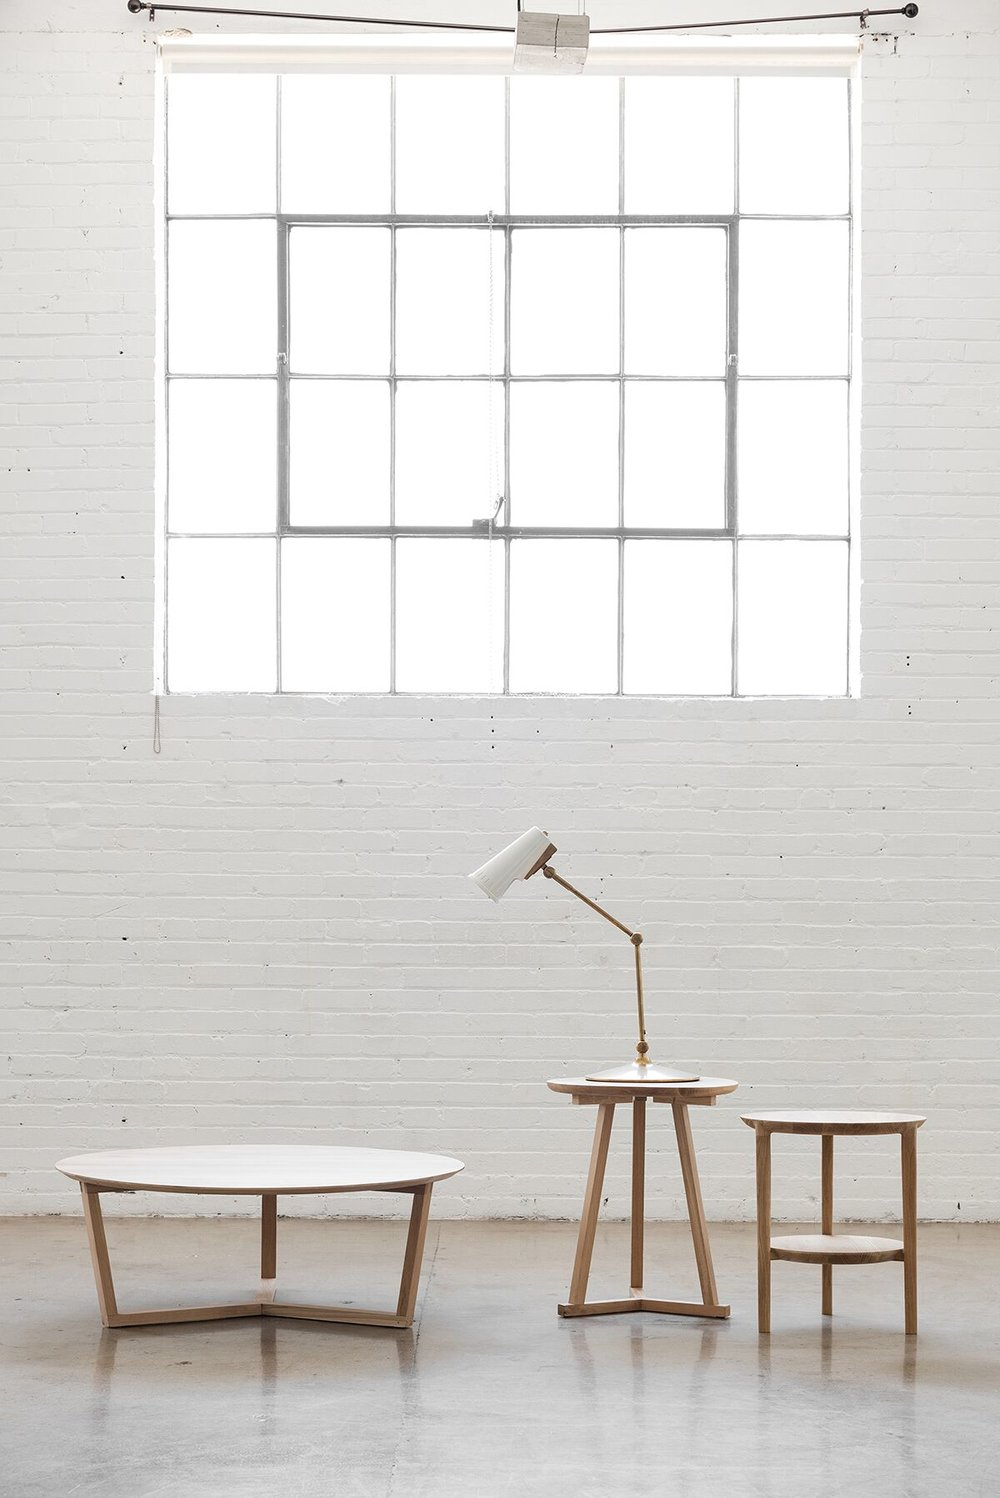 Introducing The Natural Collection — streamlined, natural wood, timeless furniture pieces, McGee & Co | www.mcgeeandco.com